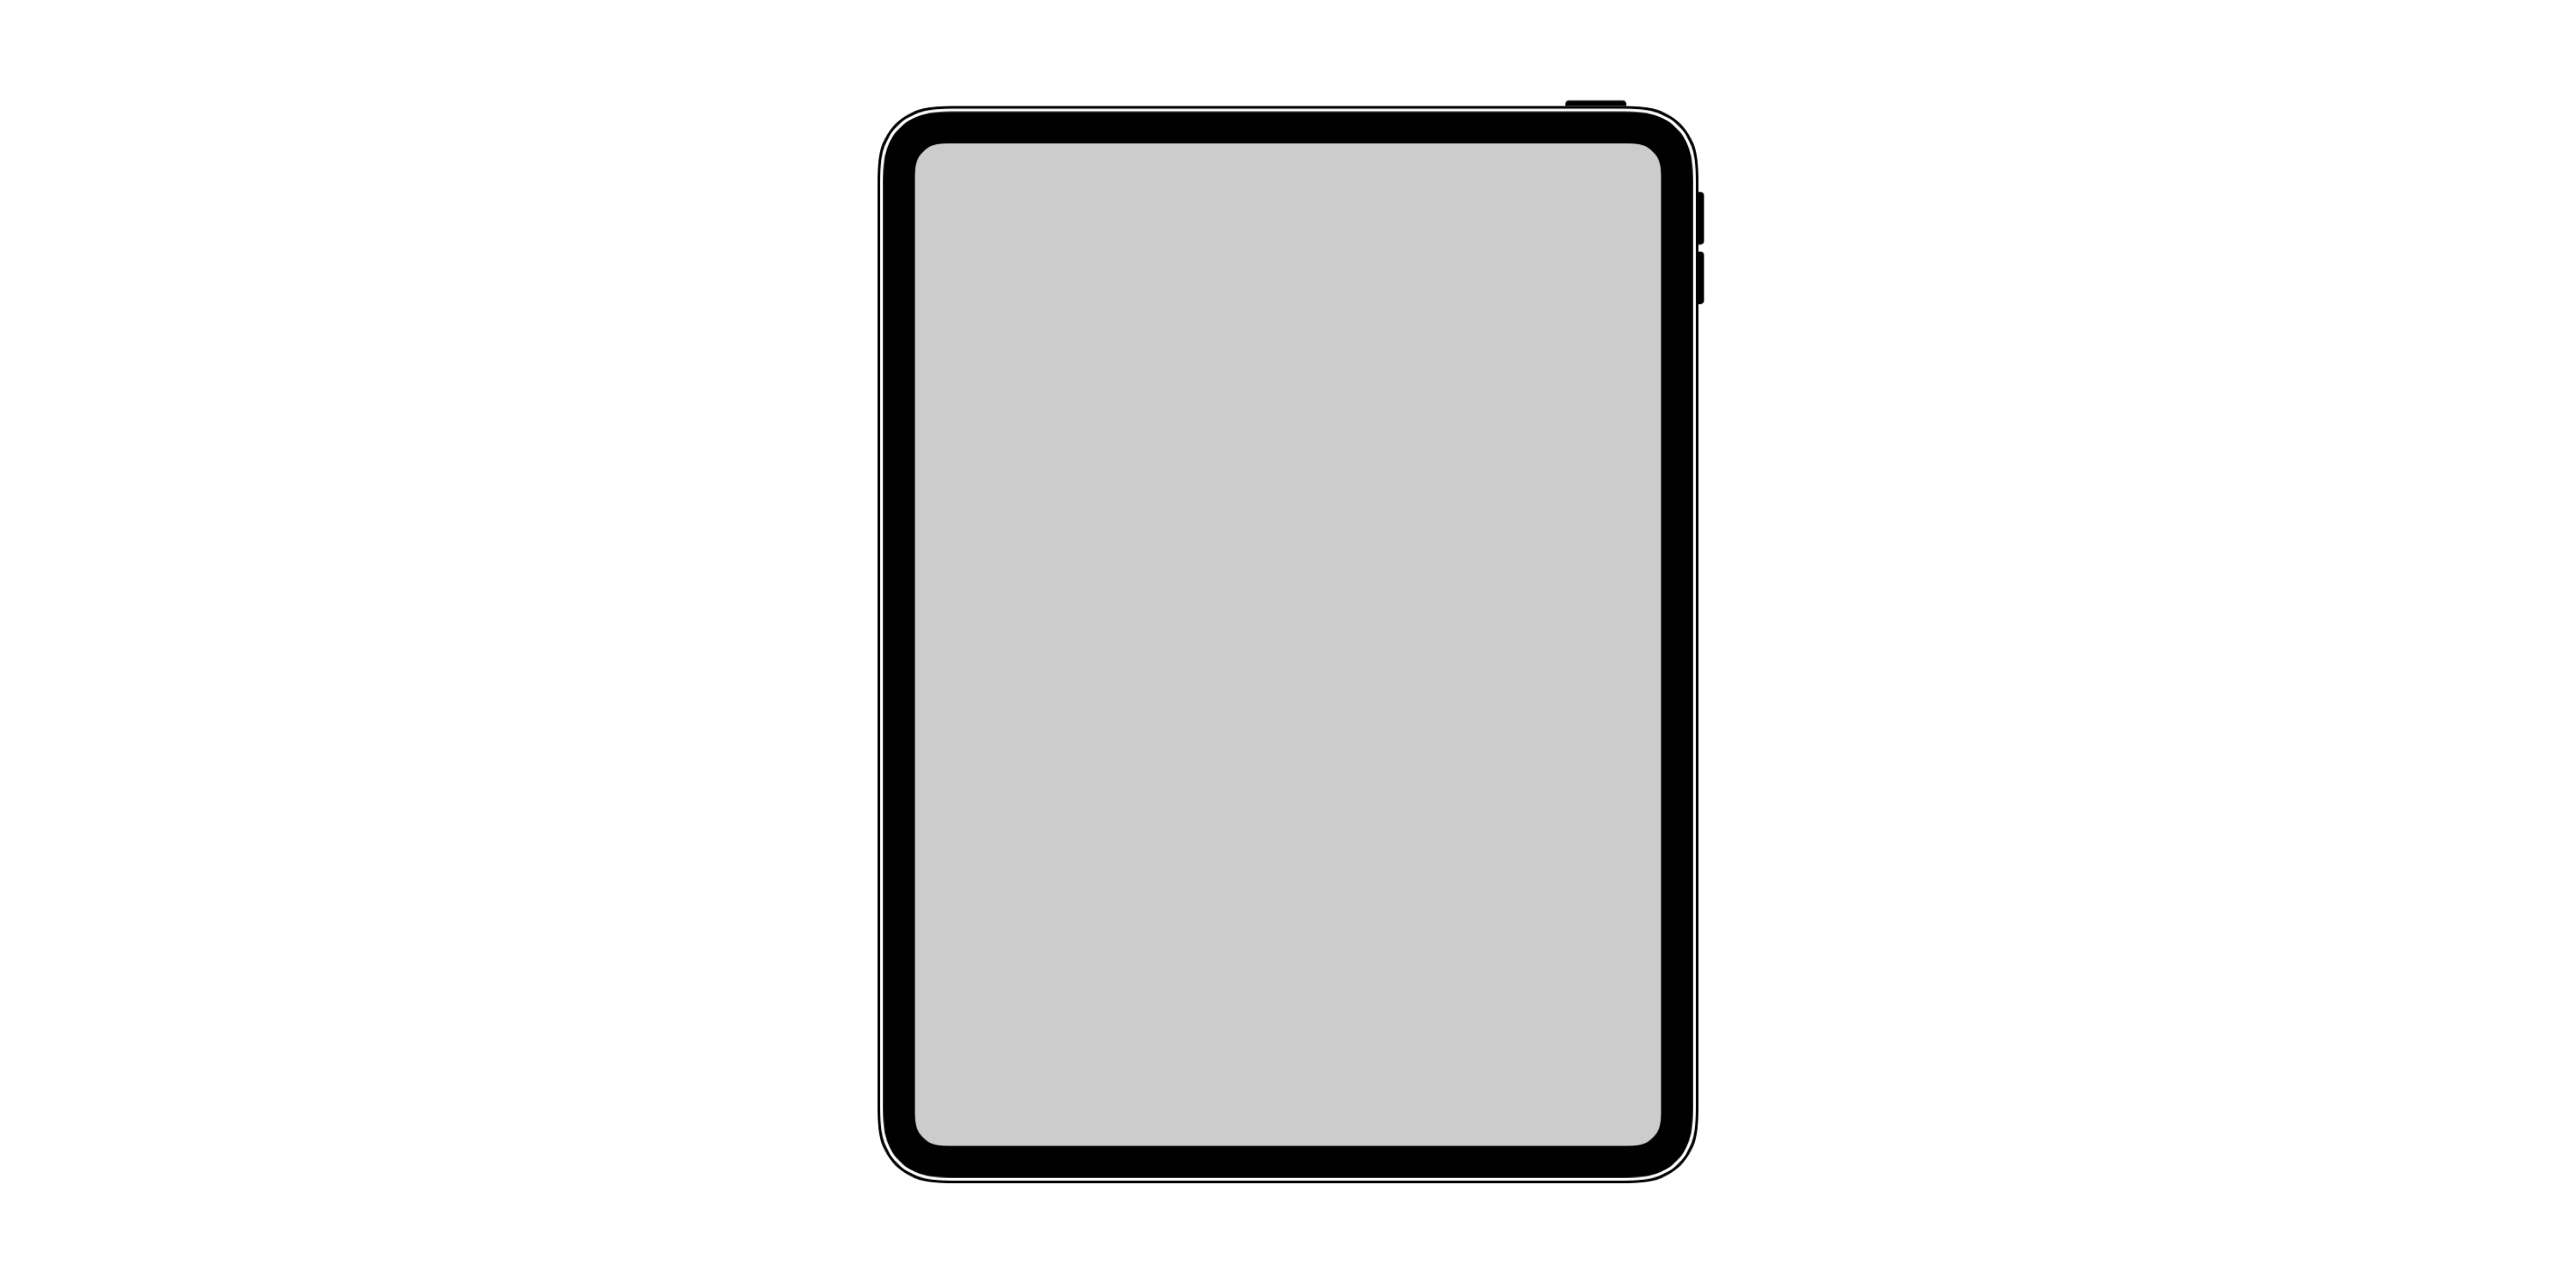 Apple iPad Pro 2018: Neues Icon zeigt Modell ohne Homebutton 1